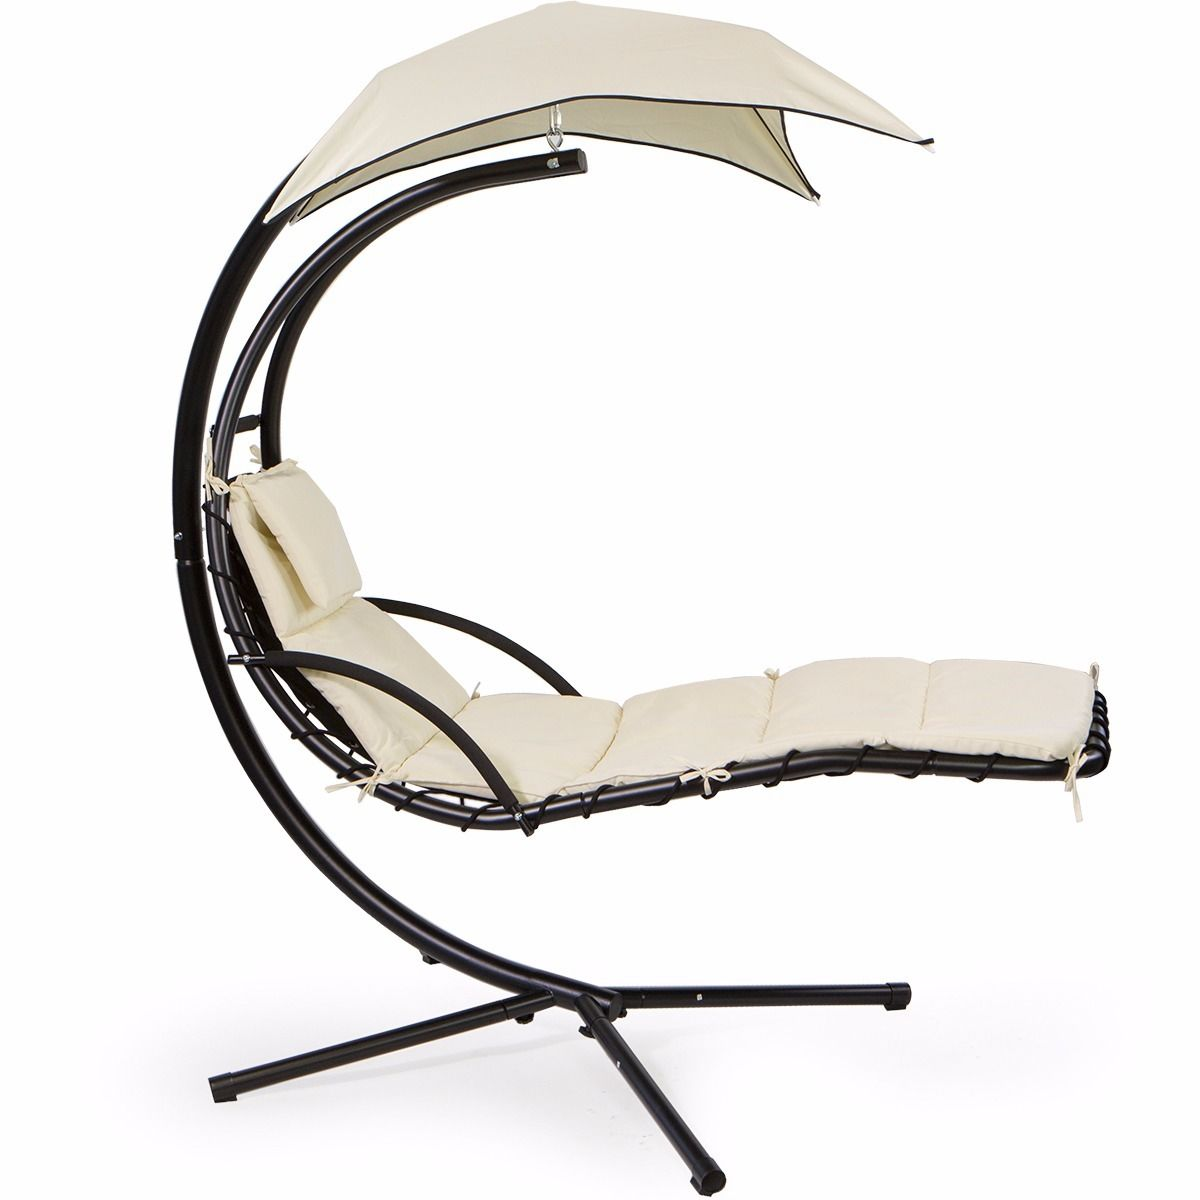 Barton Patio Hanging Helicopter dream Lounger Chair Stand ... on Hanging Helicopter Dream Lounger Chair id=71824